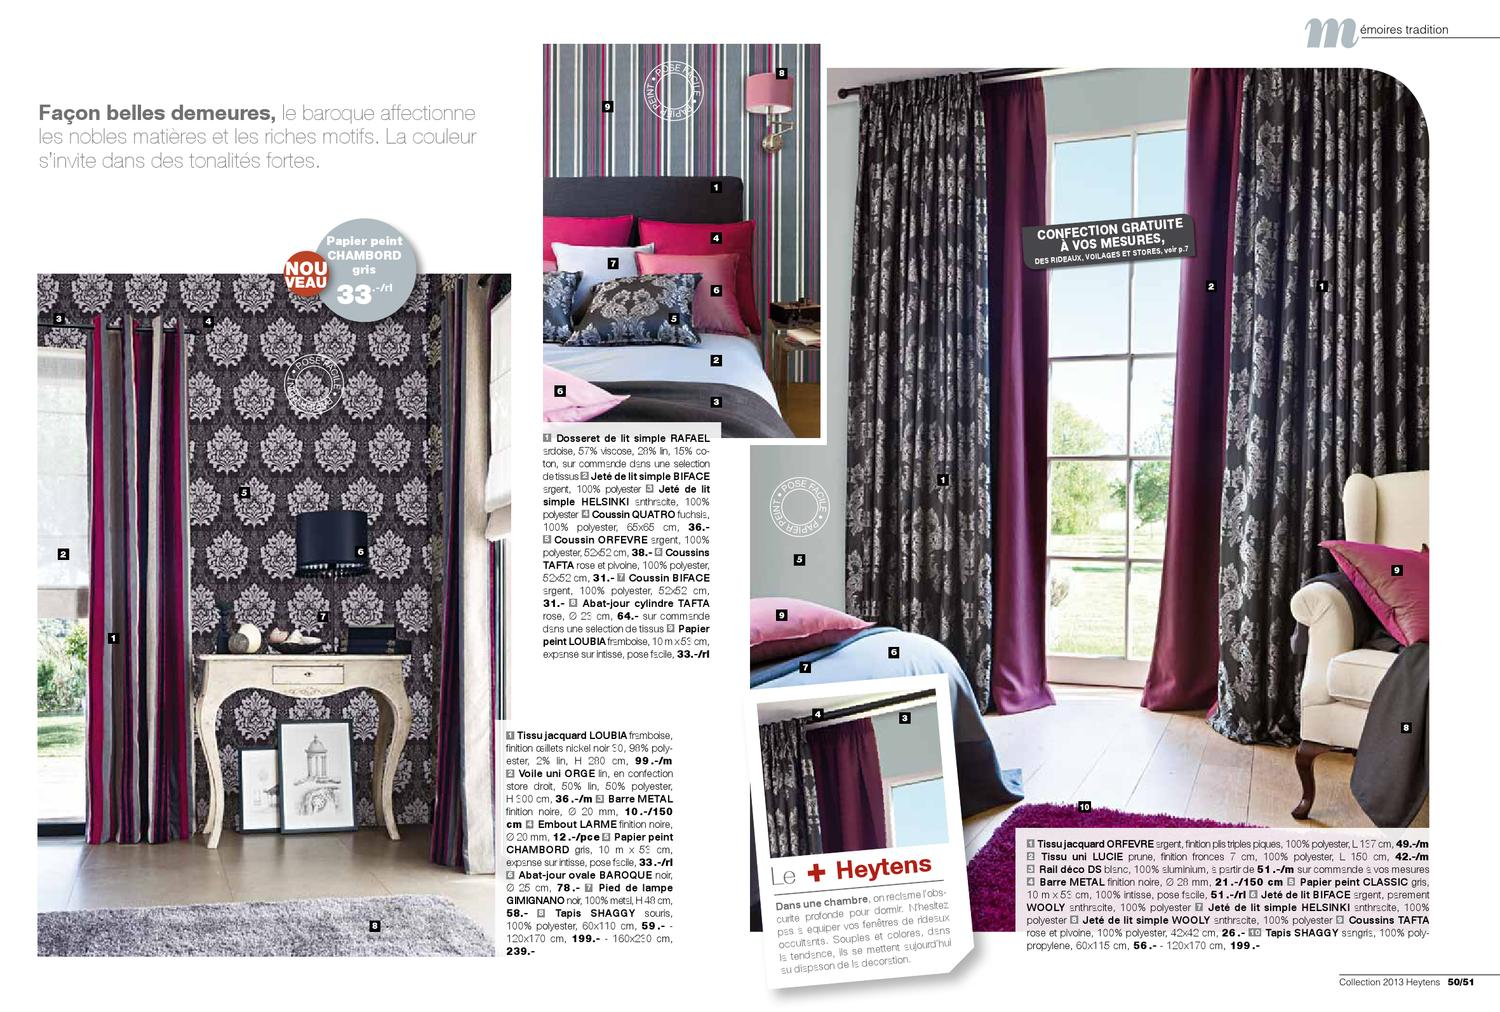 Heytens Coussins : Heytens collection ch by mehdi tekaya issuu